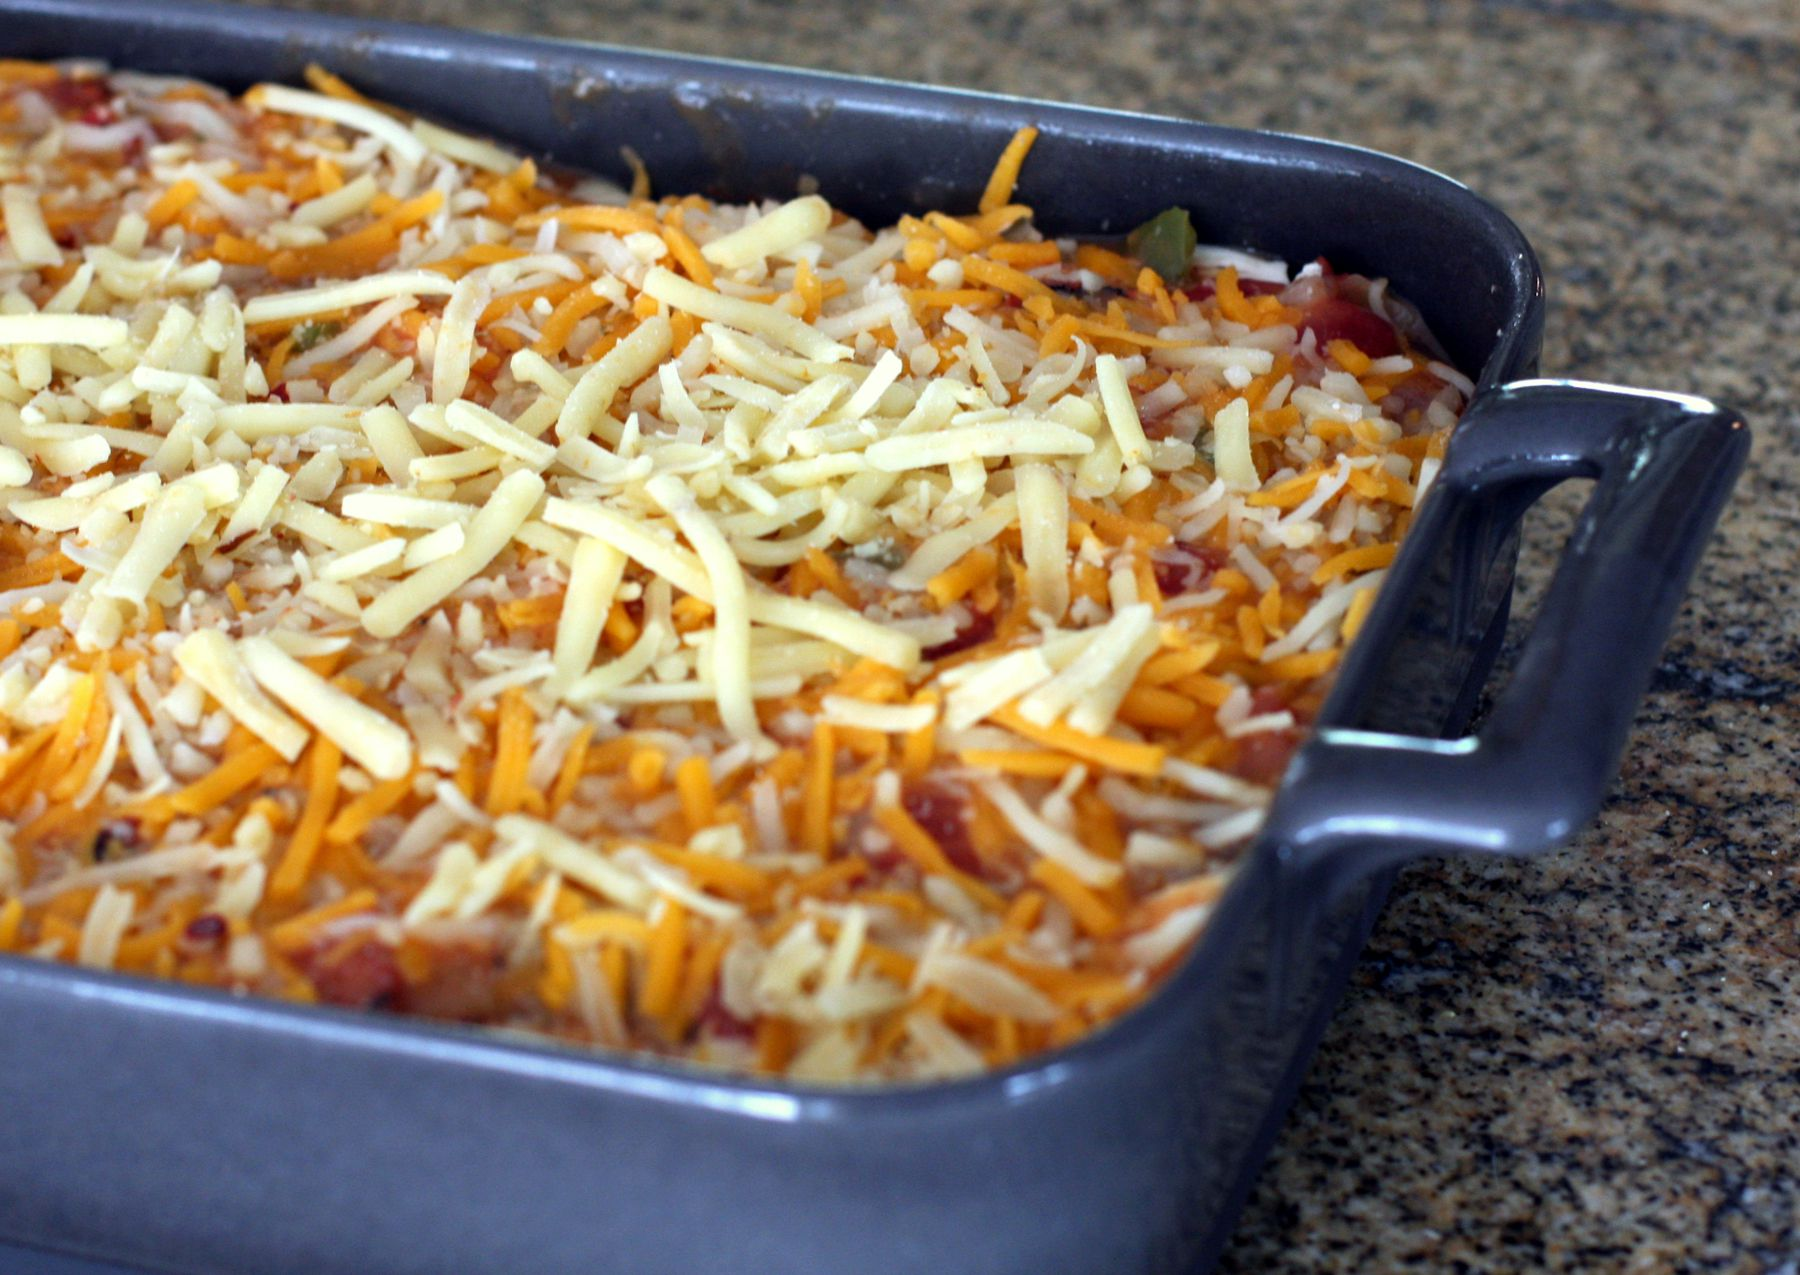 King Ranch Chicken Casserole with Corn Tortillas